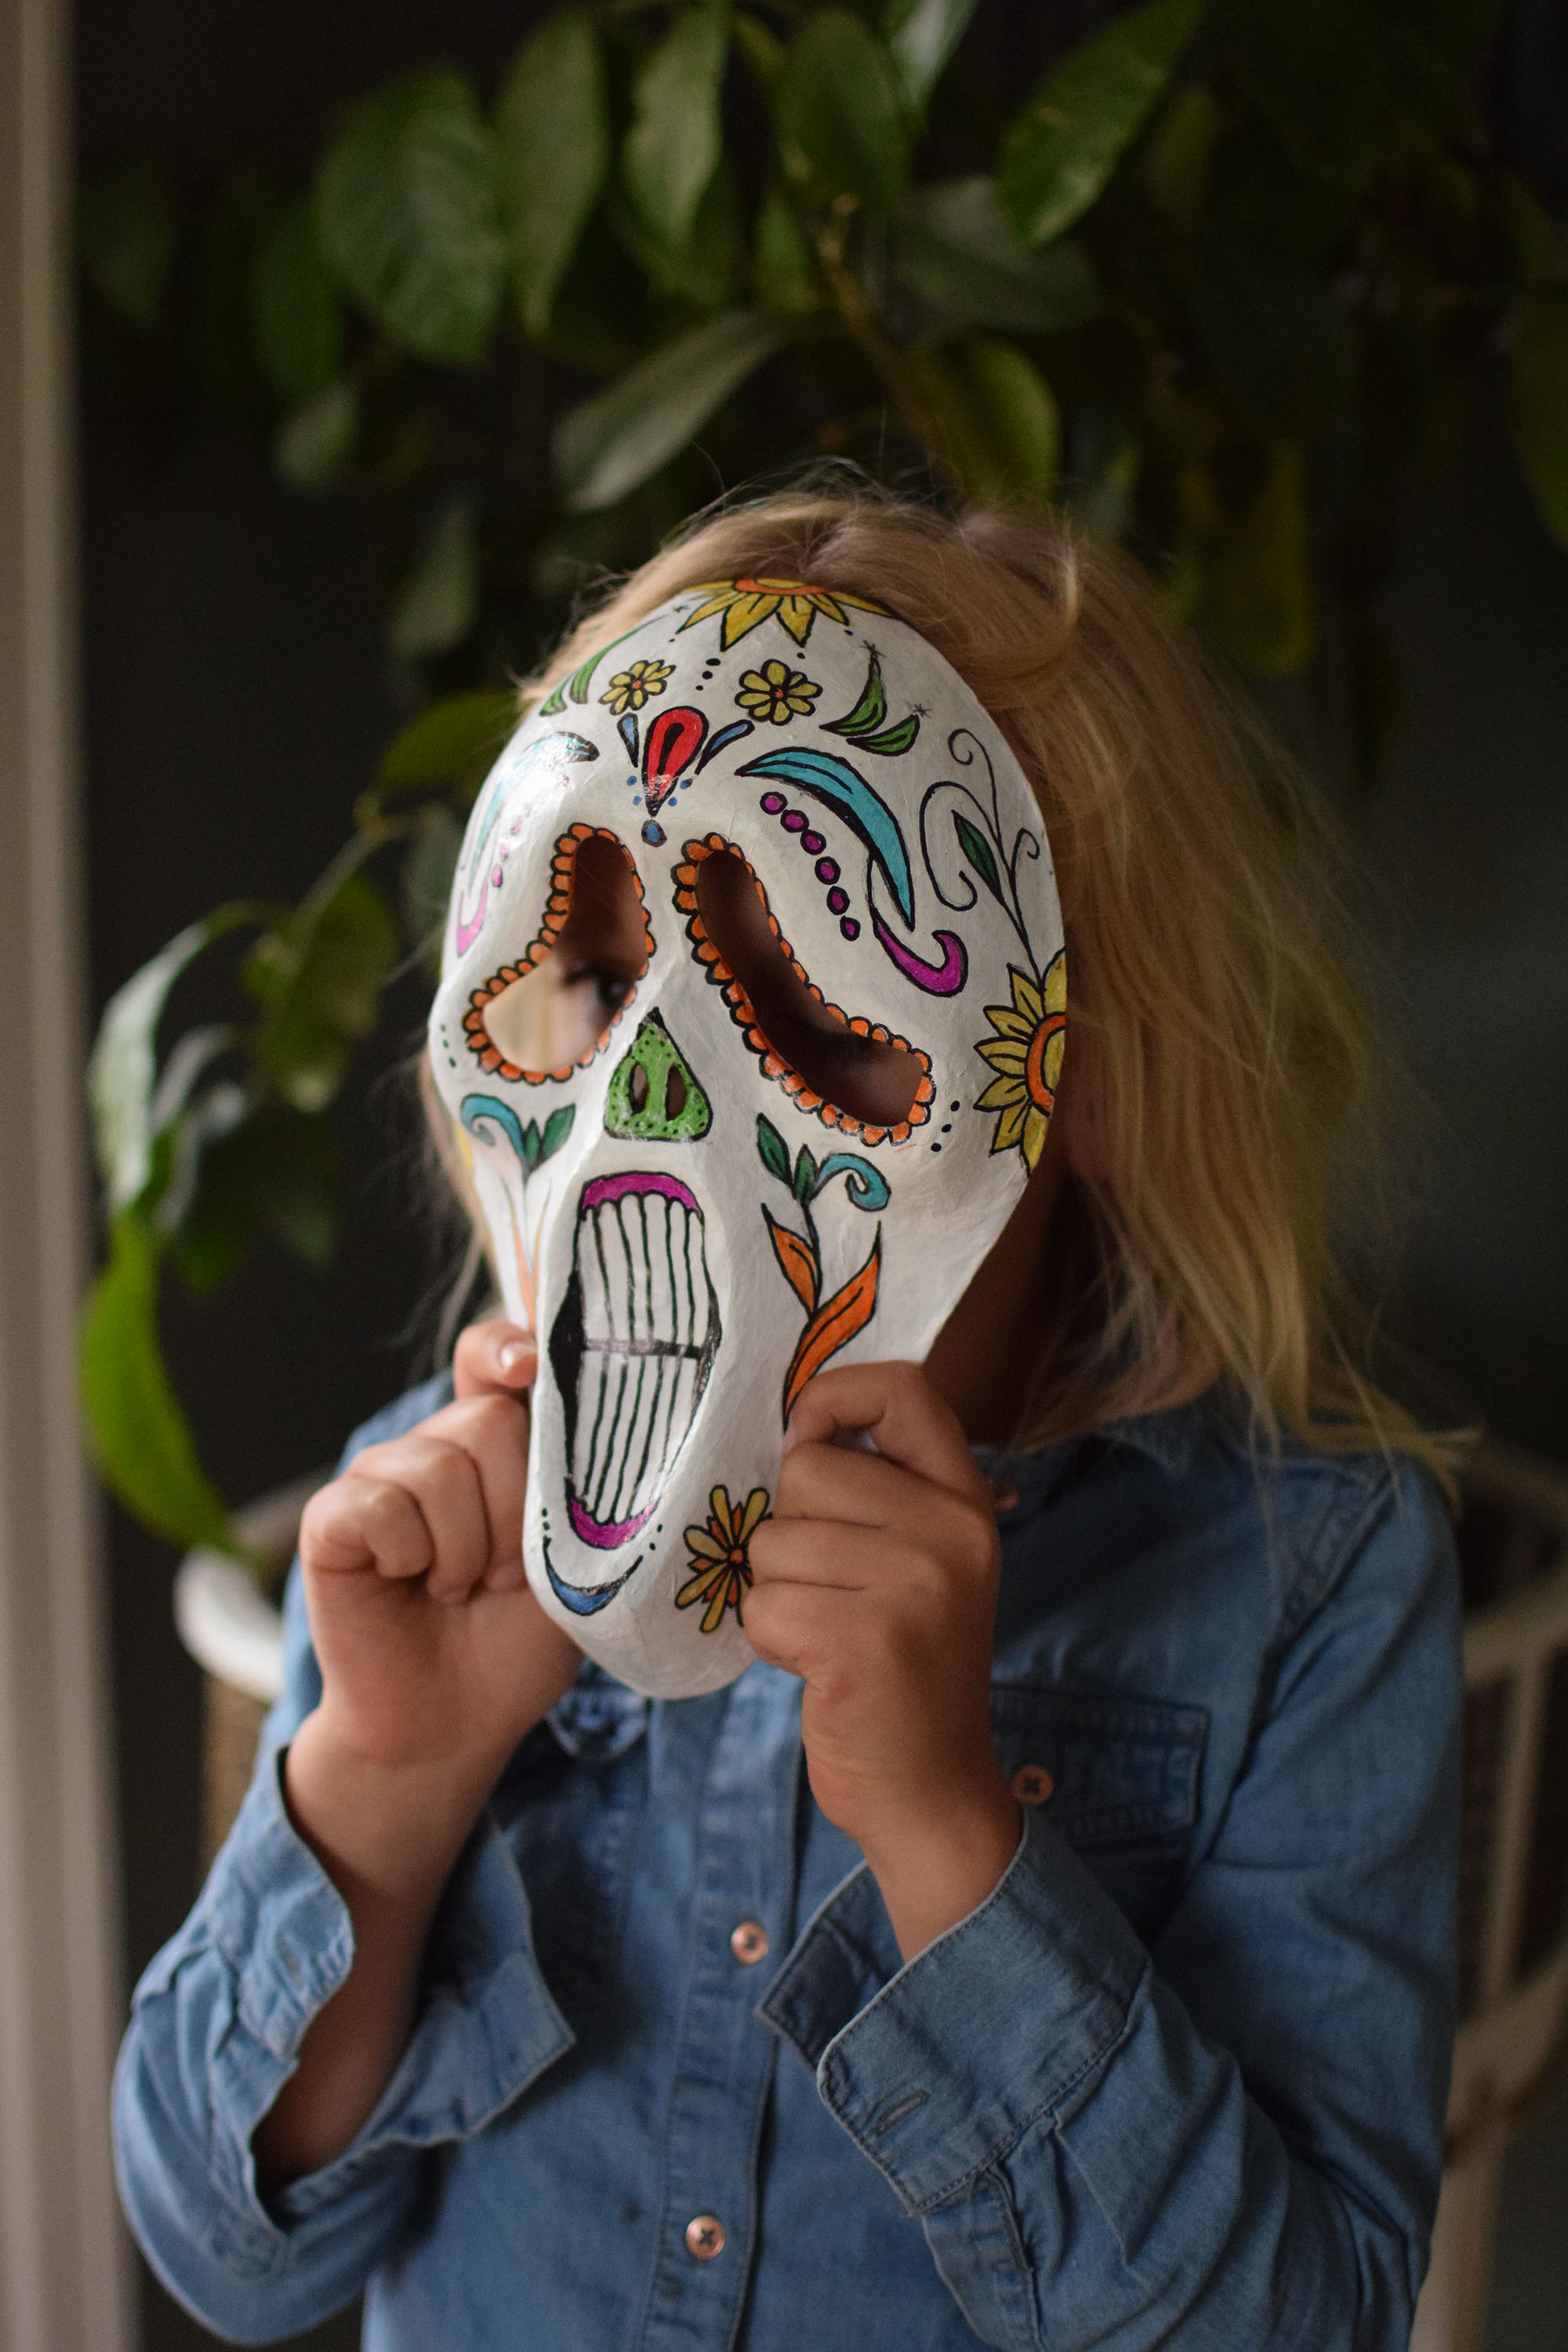 2 halloweenpyssel i 1: masken från Scream & mexikansk sugar skull